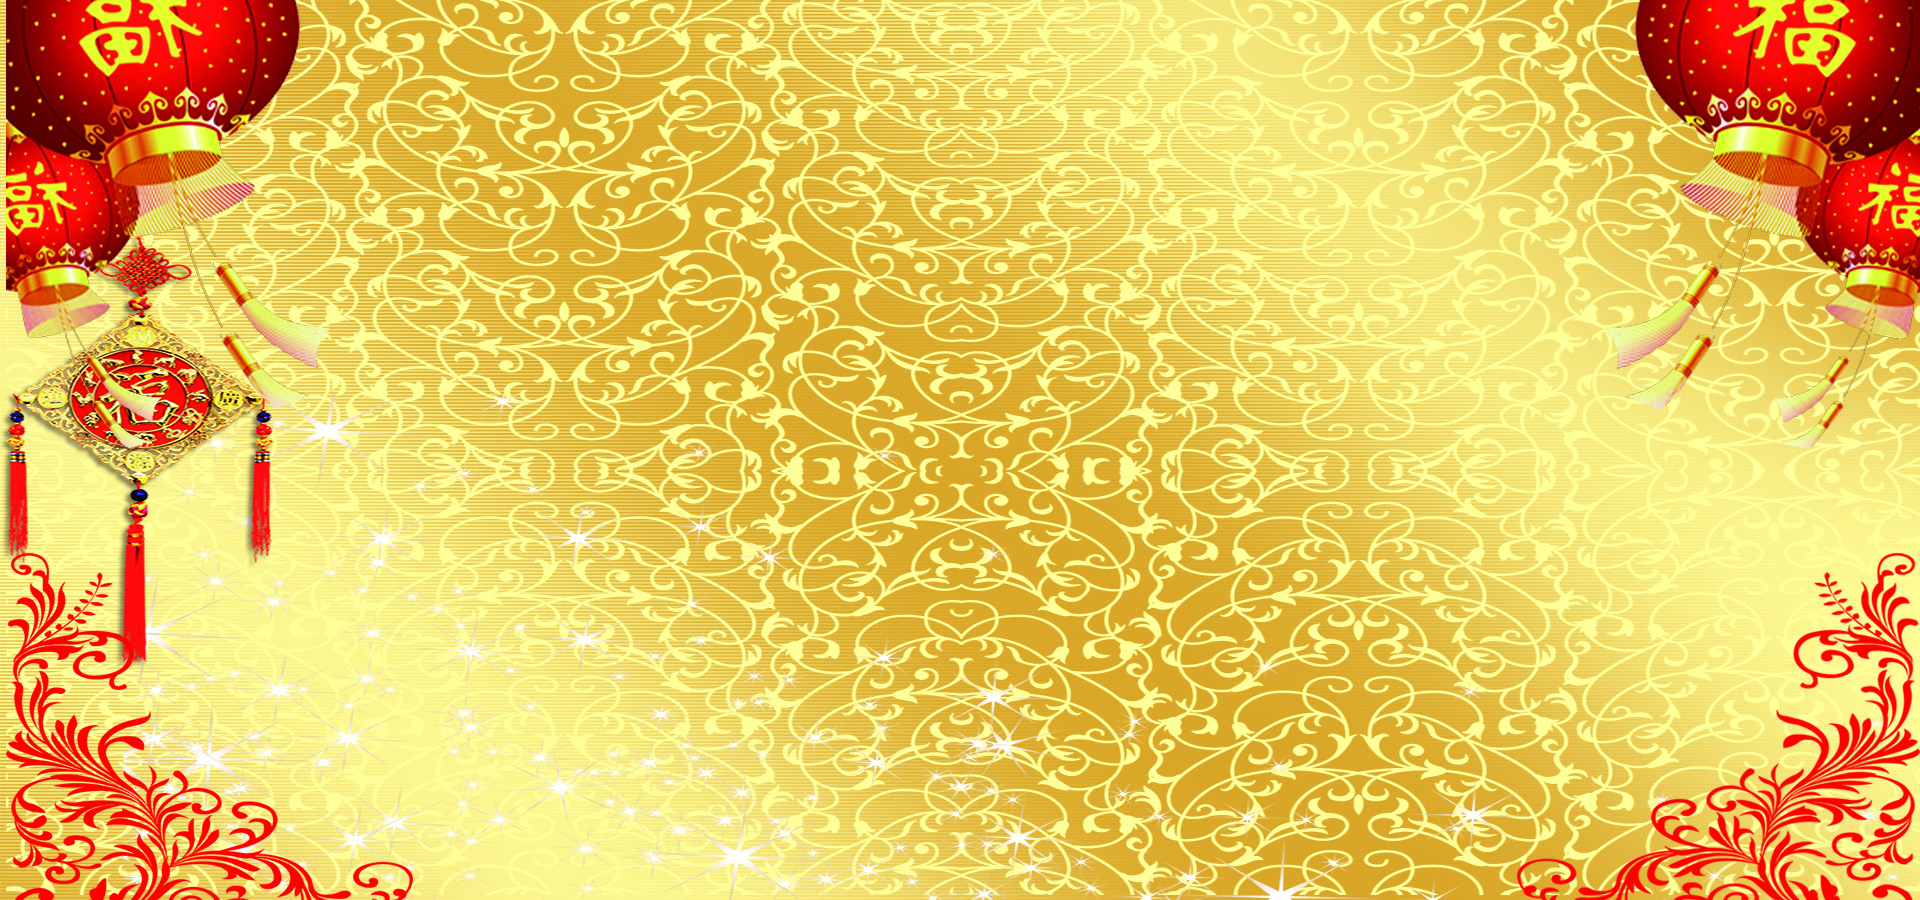 Free Fall Bc Nature Wallpaper New Year Festive Chinese Knot Golden Poster Background